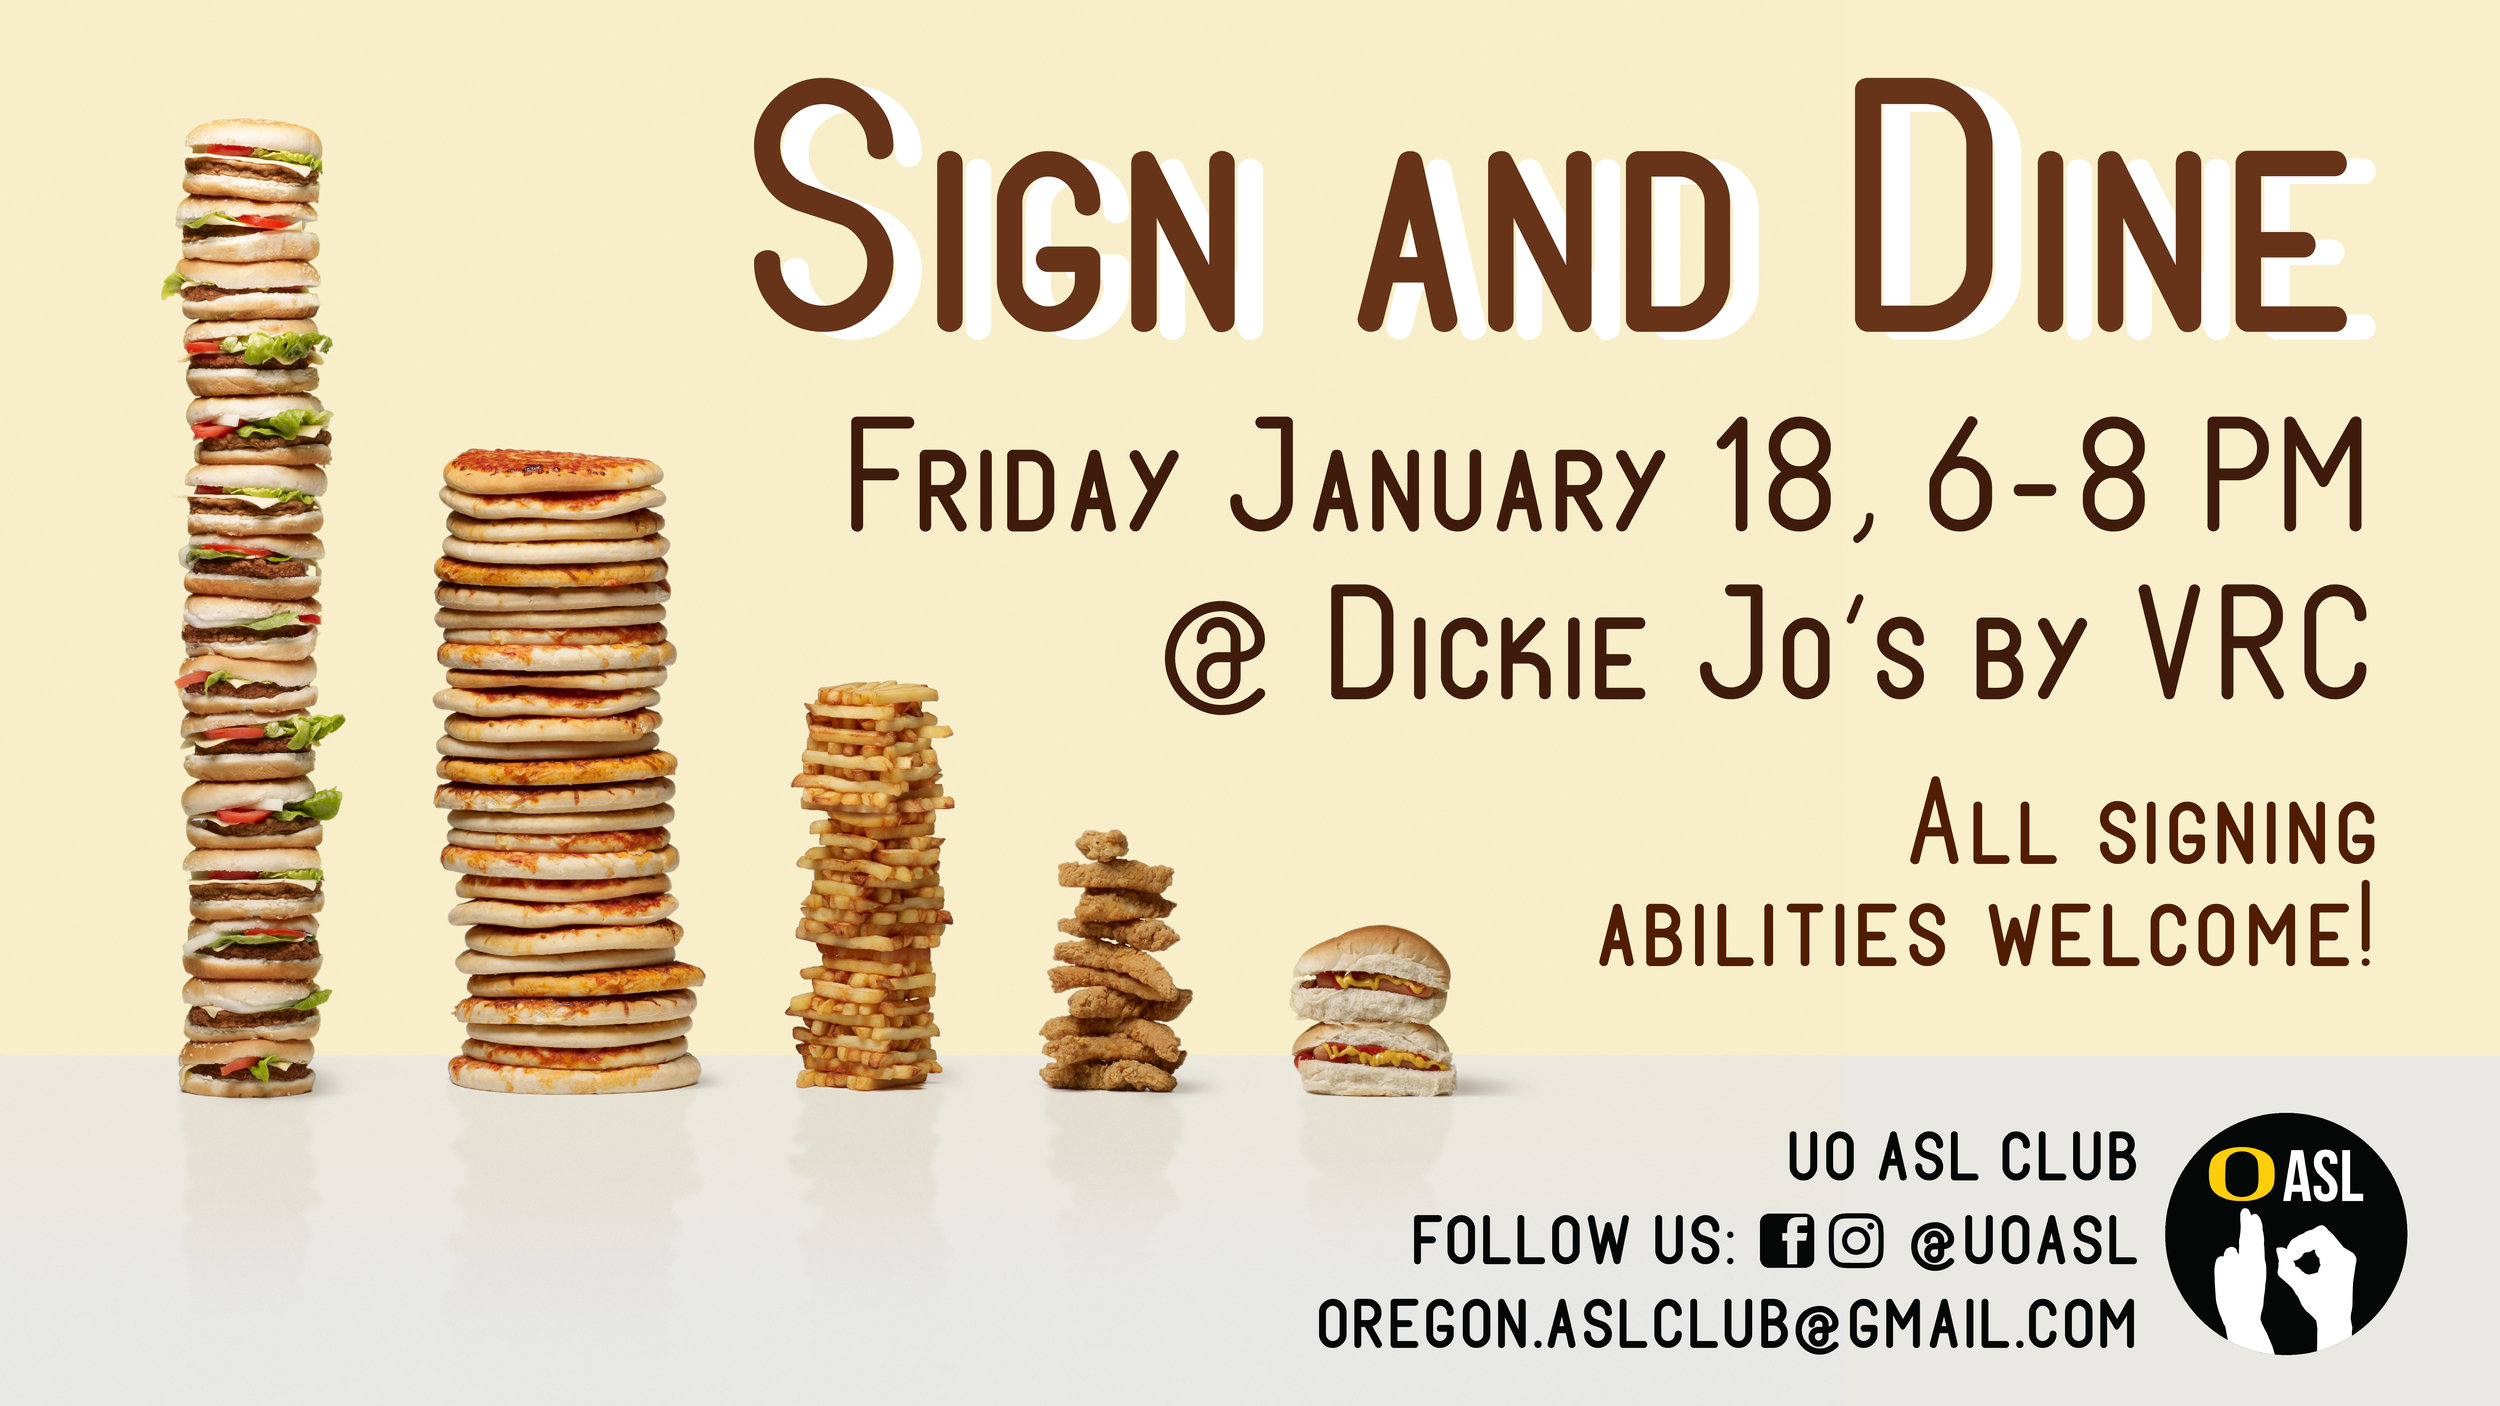 jan sign and dine 2019-01.jpg